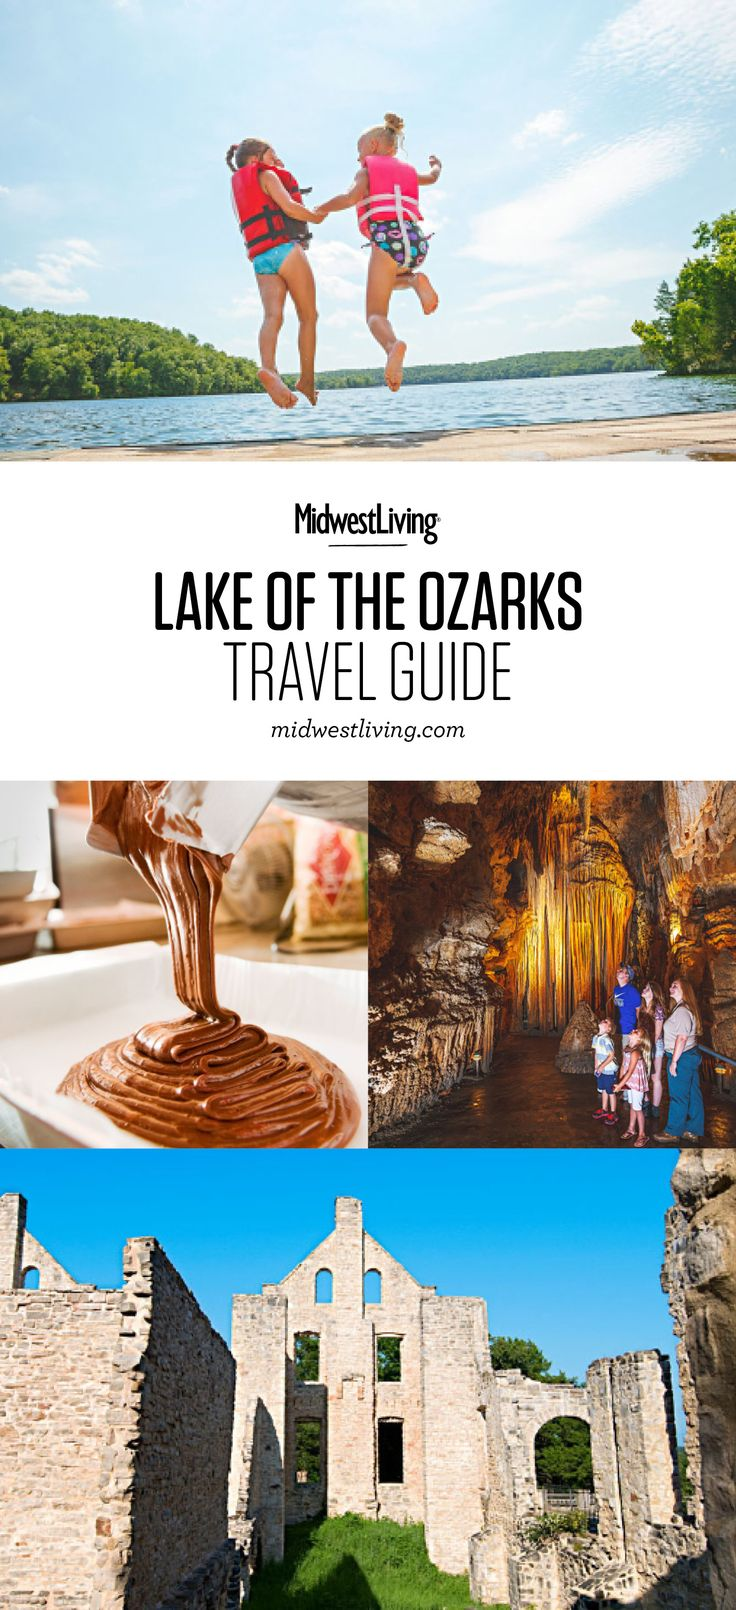 Settle in at your choice of Lake of the Ozarks resorts, cabins or hotels, then spend your days exploring the vast lake or the towns like Osage Beach that surround it. Check out our picks for what to do, where to eat and where to stay!